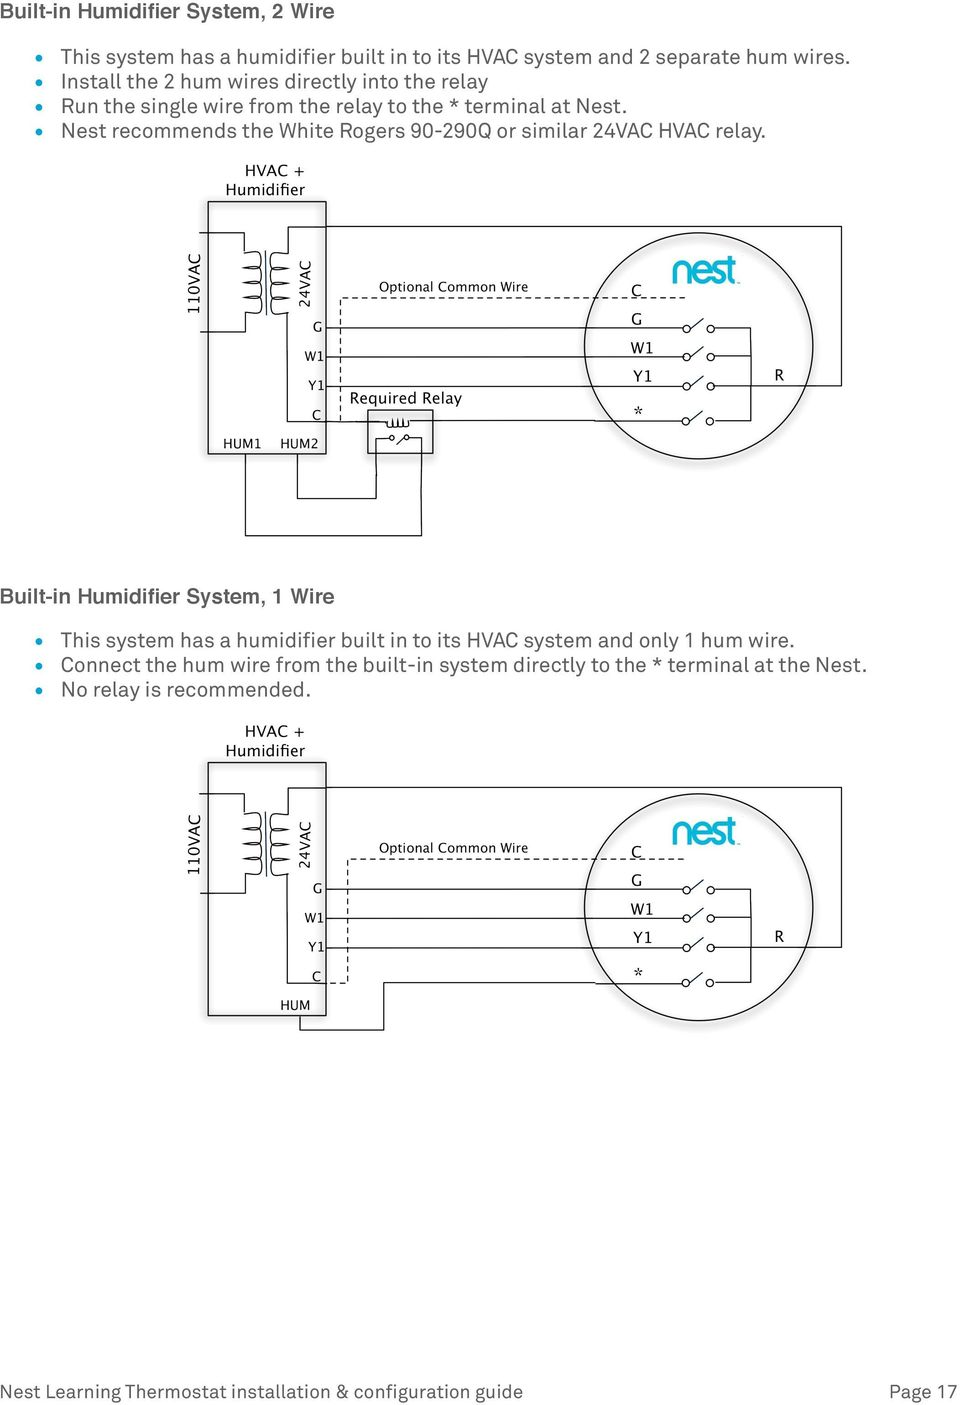 Renault Remote Starter Diagram Custom Project Wiring For Vivint Thermostat Images